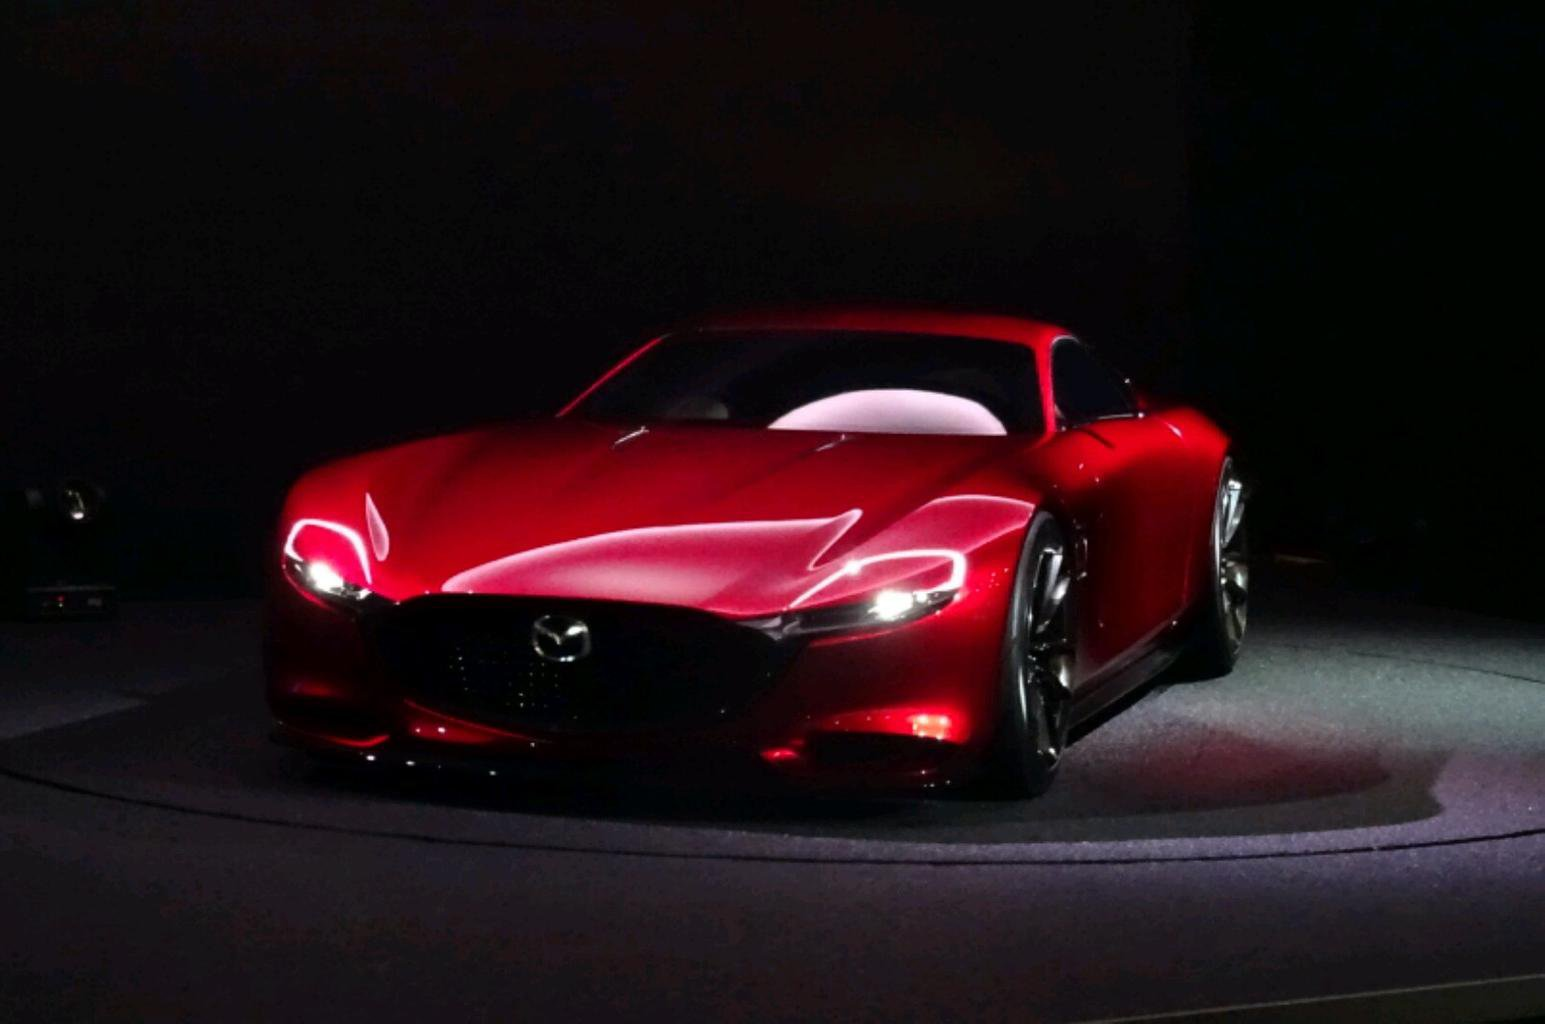 Mazda RX-Vision concept previews return of rotary engines